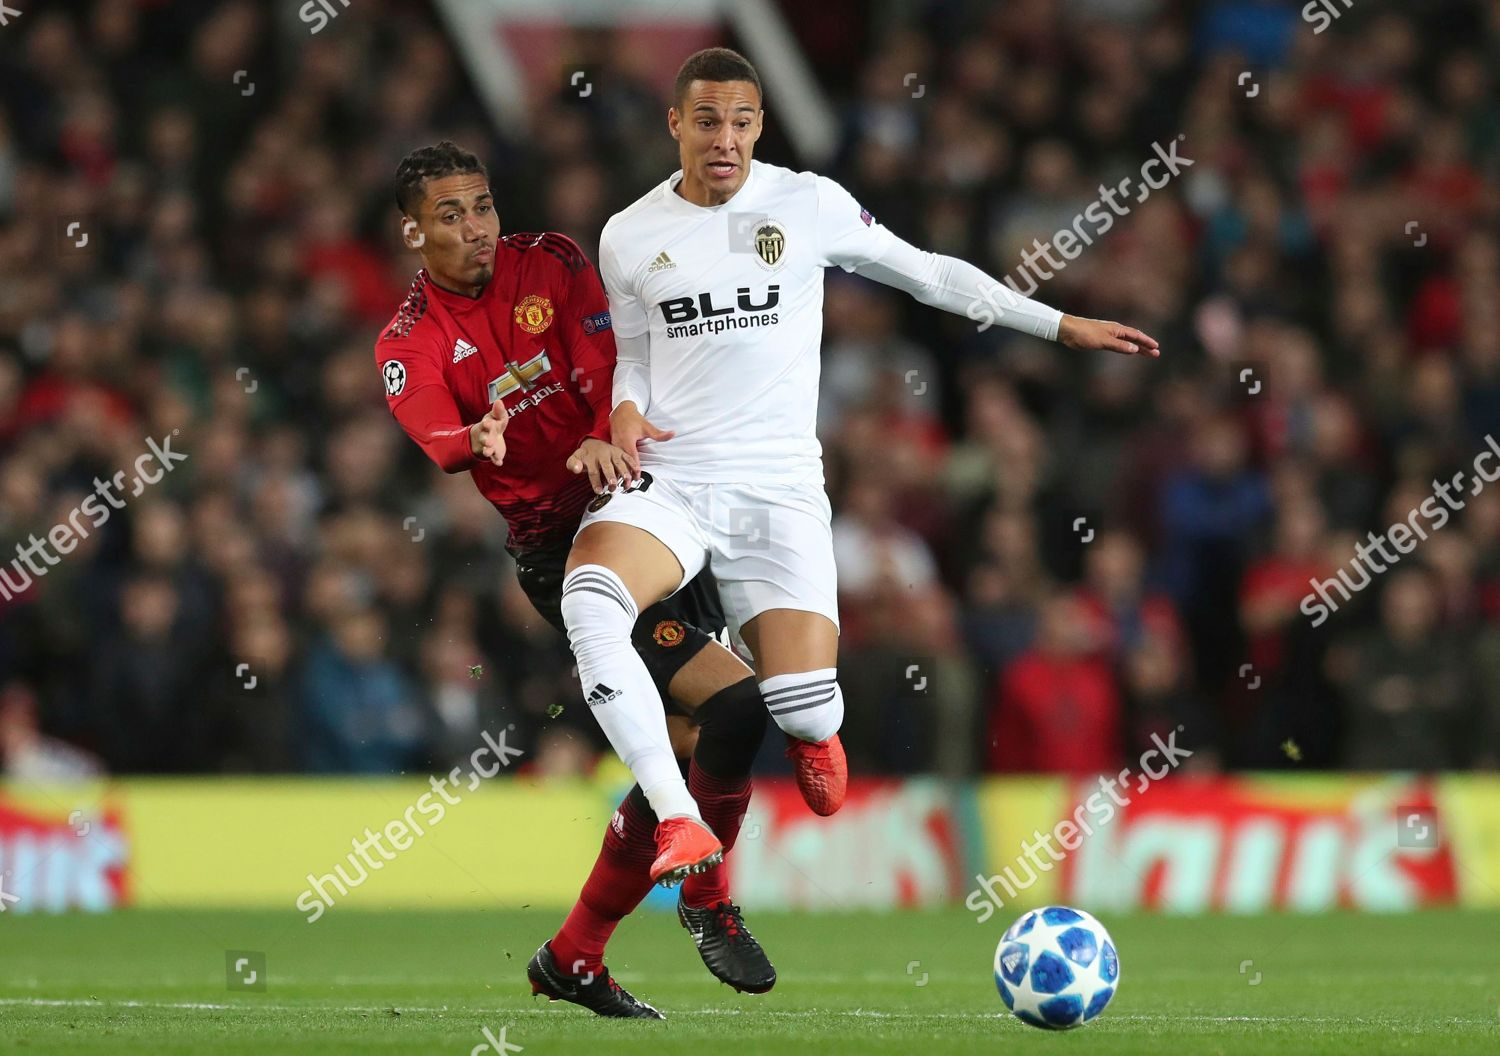 Manu Defender Chris Smalling Left Fights Ball Redaktionelles